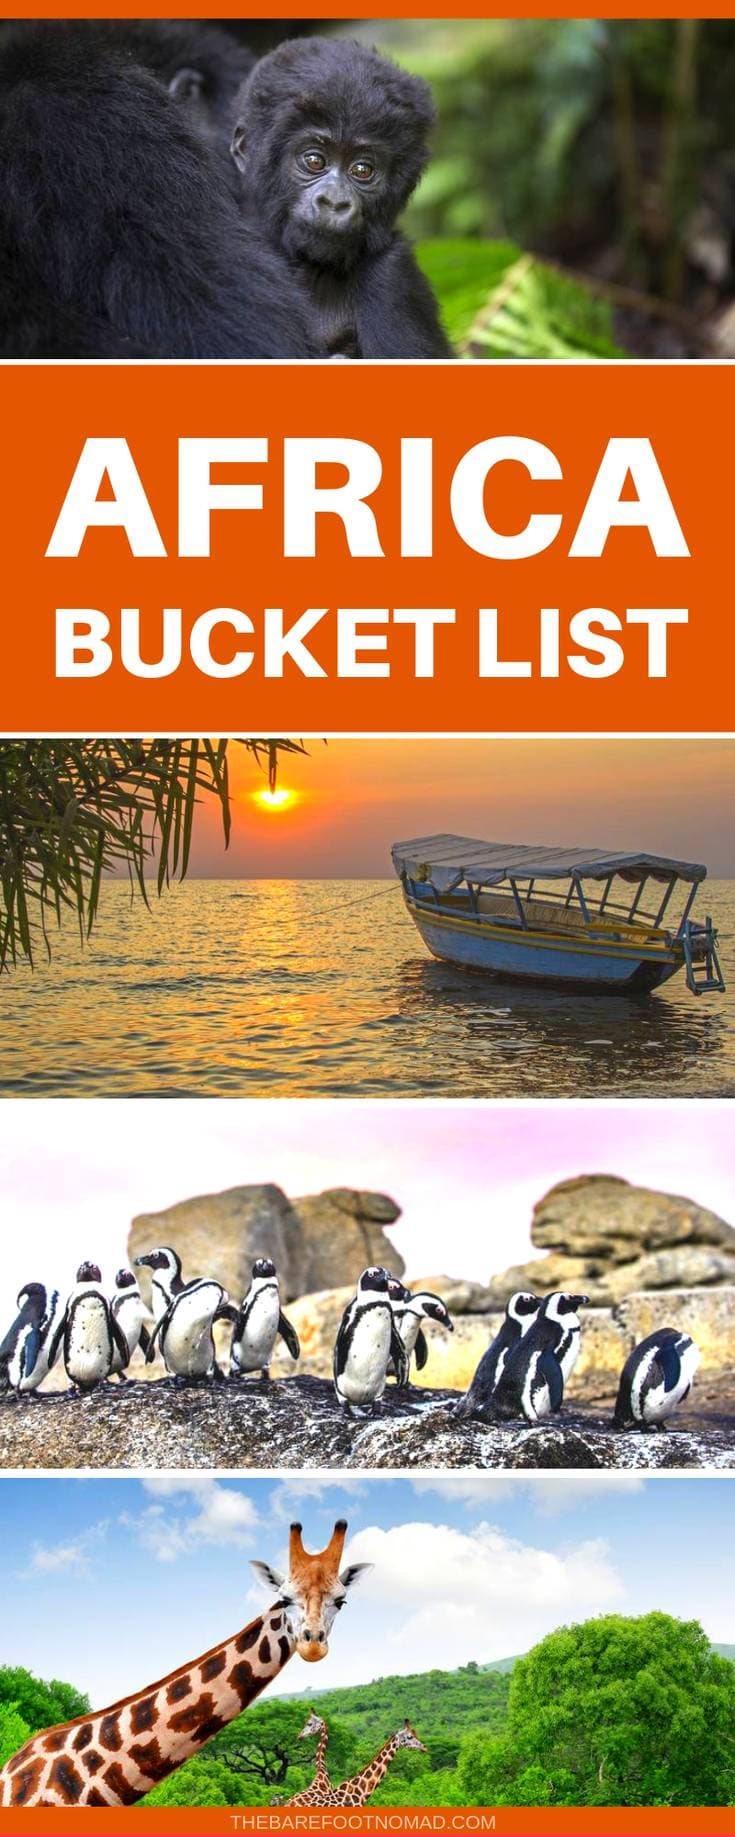 Africa bucket list for this amazing continent